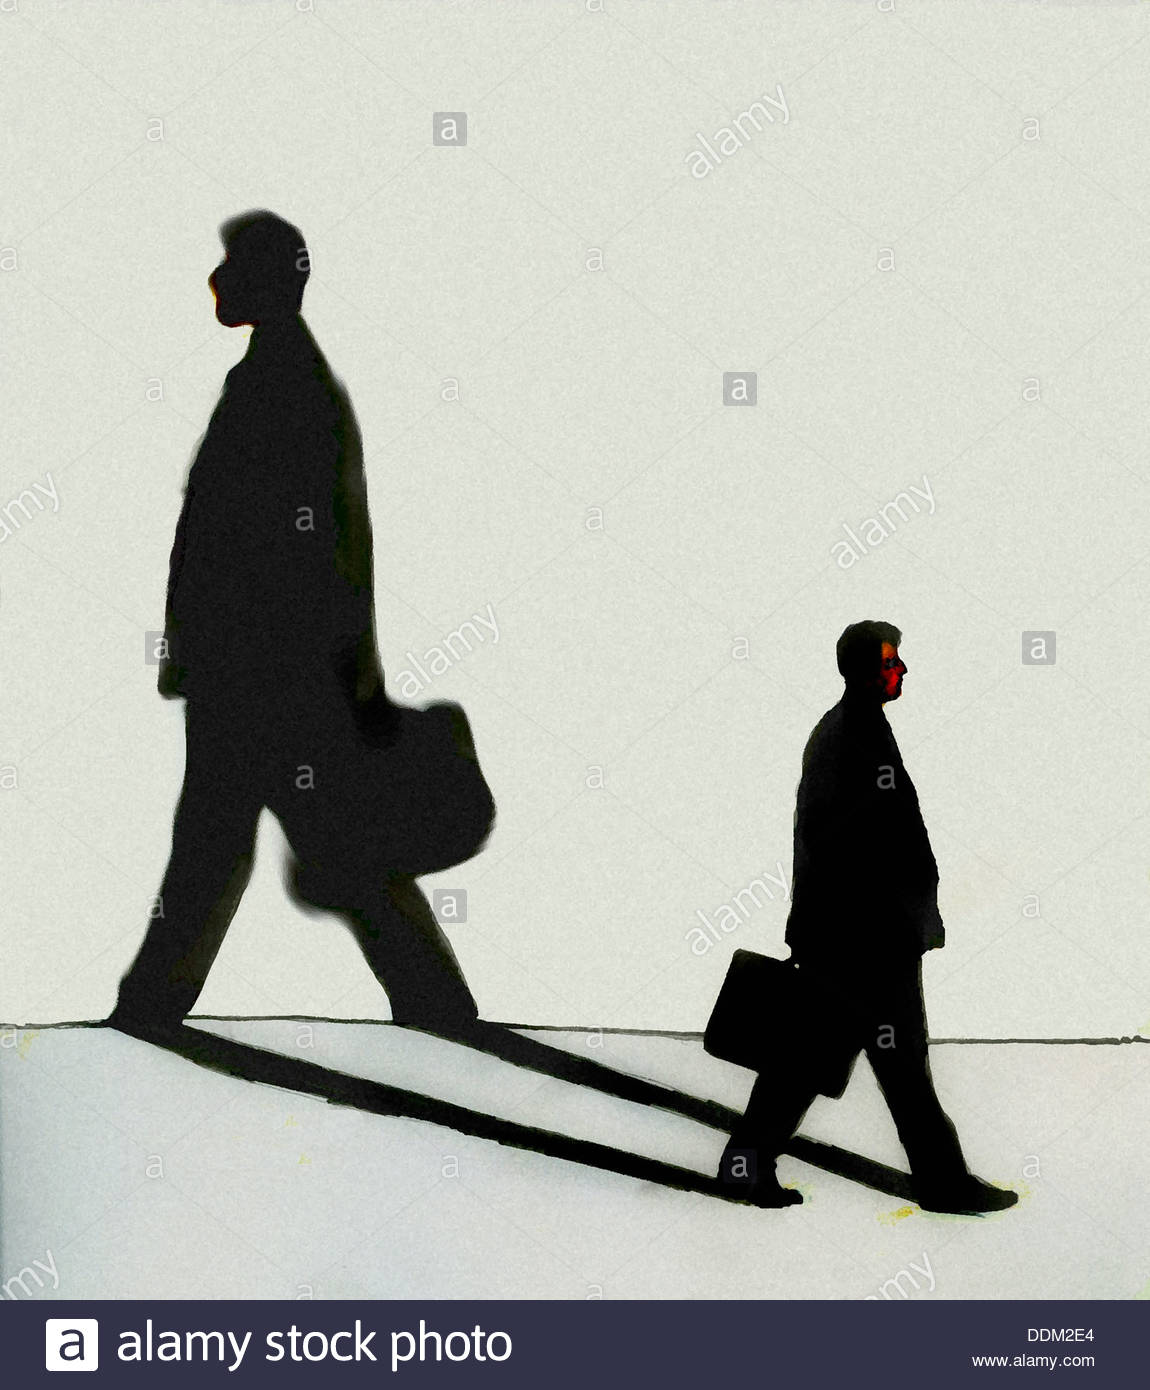 Businessman walking in opposite direction of own shadow - Stock Image